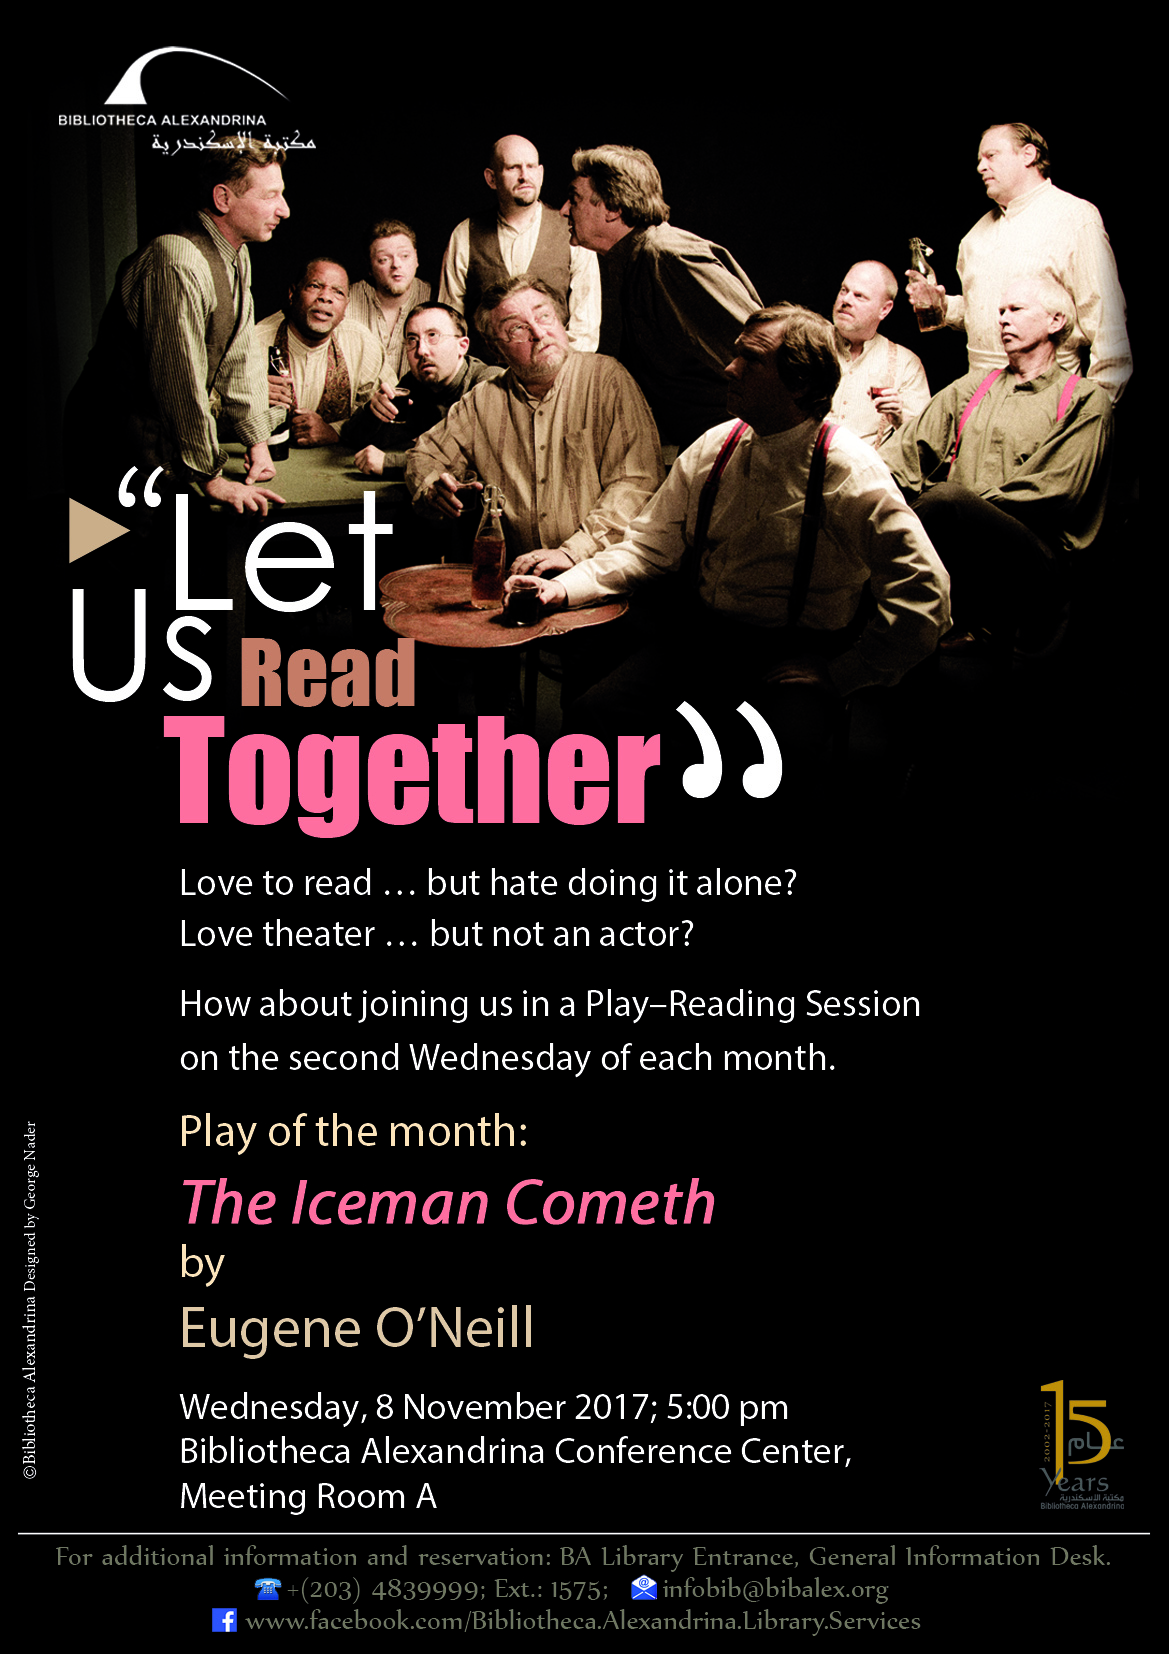 the iceman cometh by eugene oneill essay An introduction to the iceman cometh by eugene o'neill learn about the book and the historical context in which it was written.